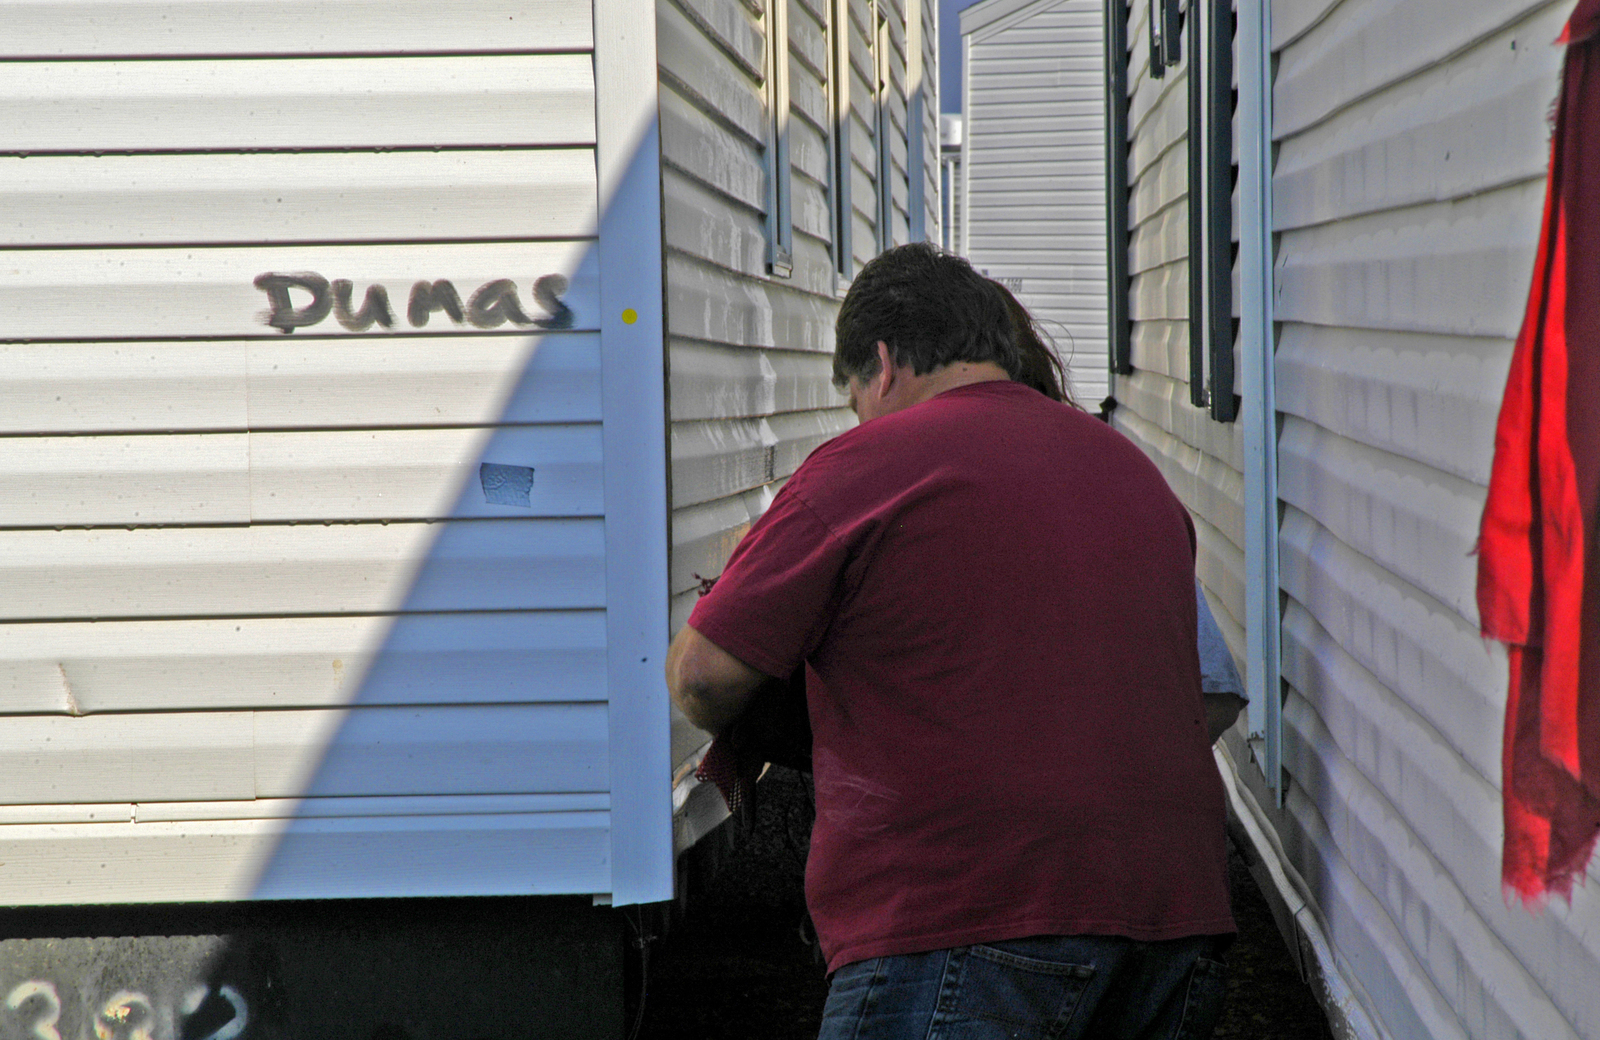 HOPE, AR, March 10, 2007 -- A mobile home technician conducts a final check on one of 23 mobile homes going to Dumas, AR to house residents recently left homeless by tornadoes.  FEMA Photo by Win Henderson